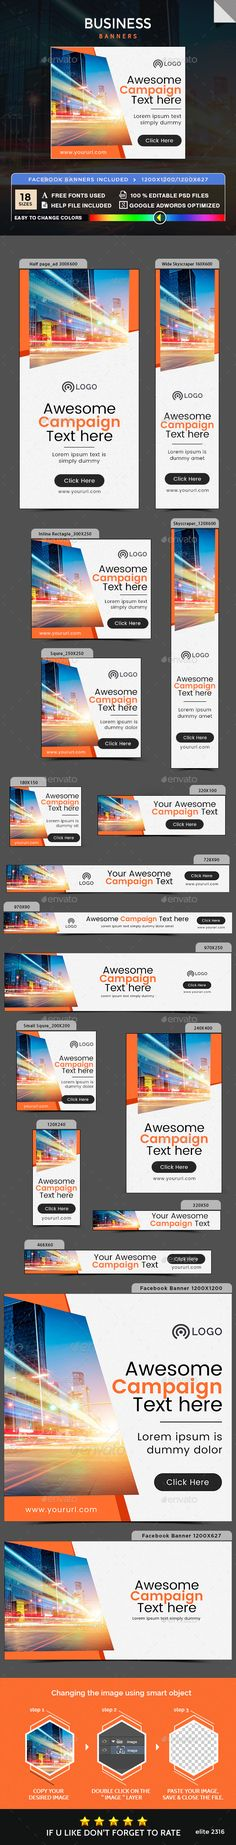 #creative #Corporate #Business #Banner #Template - #modern #Banners & #Ads #Web #Elements #design. Download here: https://graphicriver.net/item/business-banners/20056266?ref=yinkira